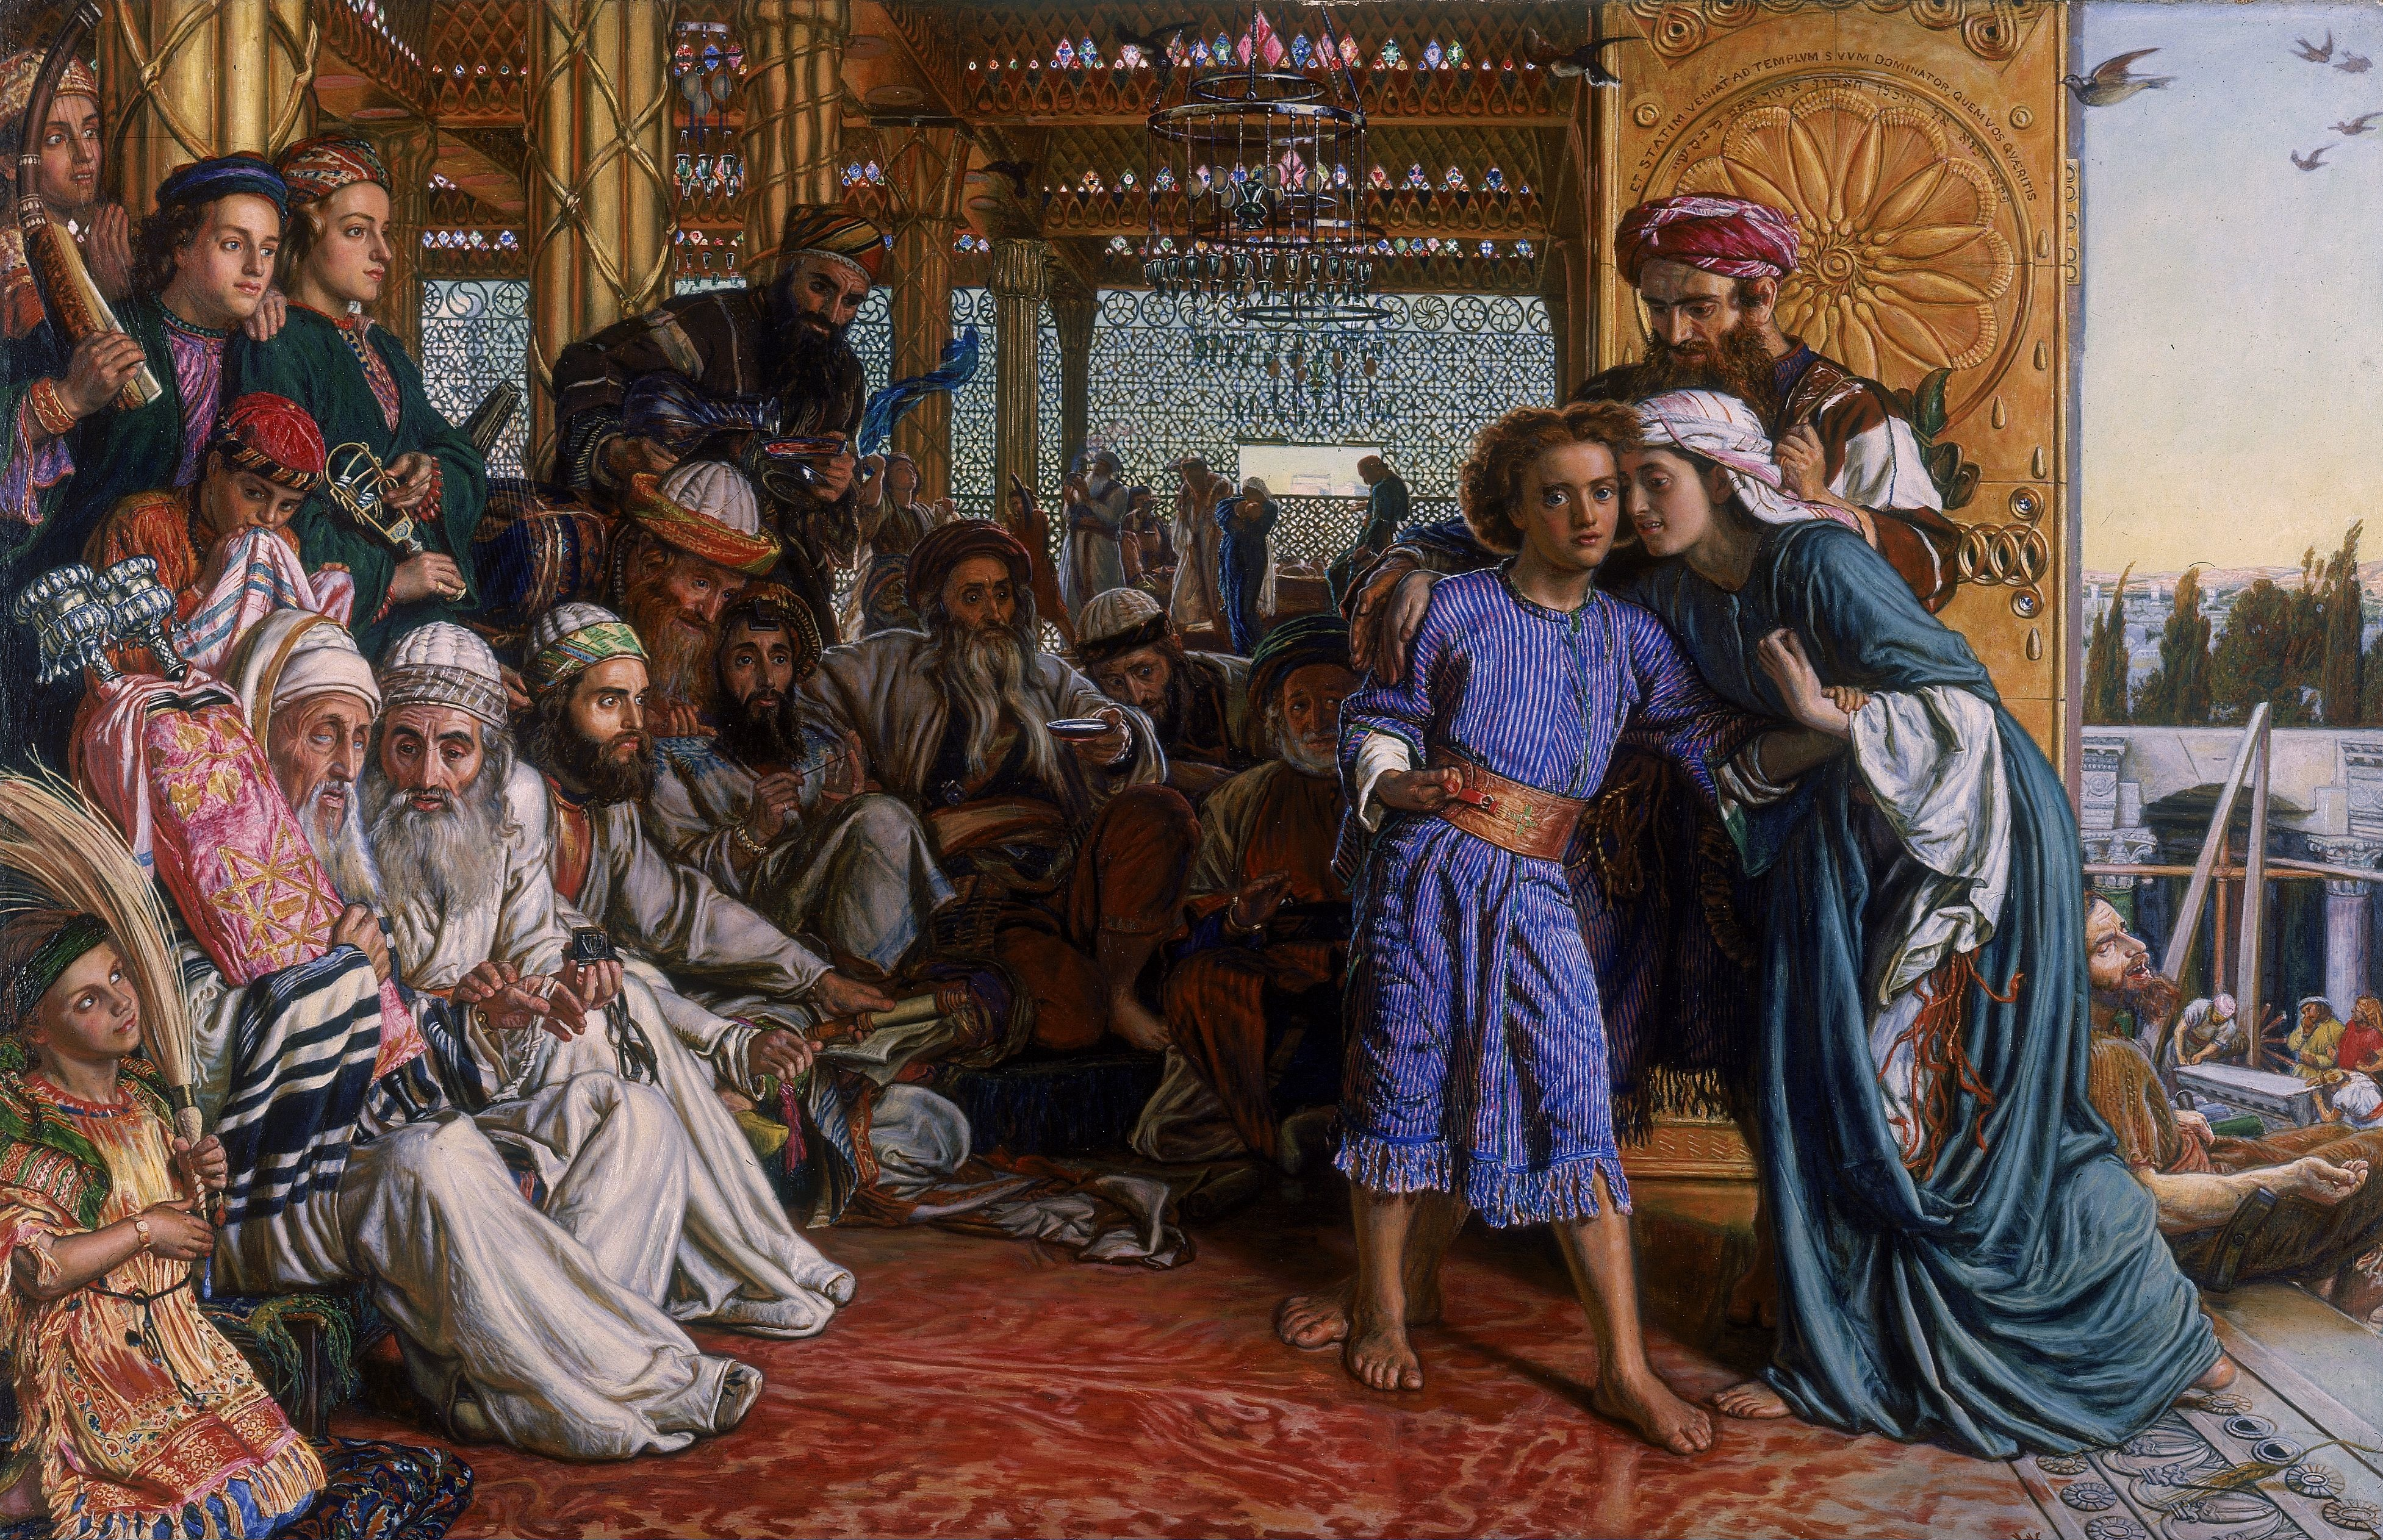 https://i1.wp.com/upload.wikimedia.org/wikipedia/commons/2/27/William_Holman_Hunt_-_The_Finding_of_the_Saviour_in_the_Temple.jpg